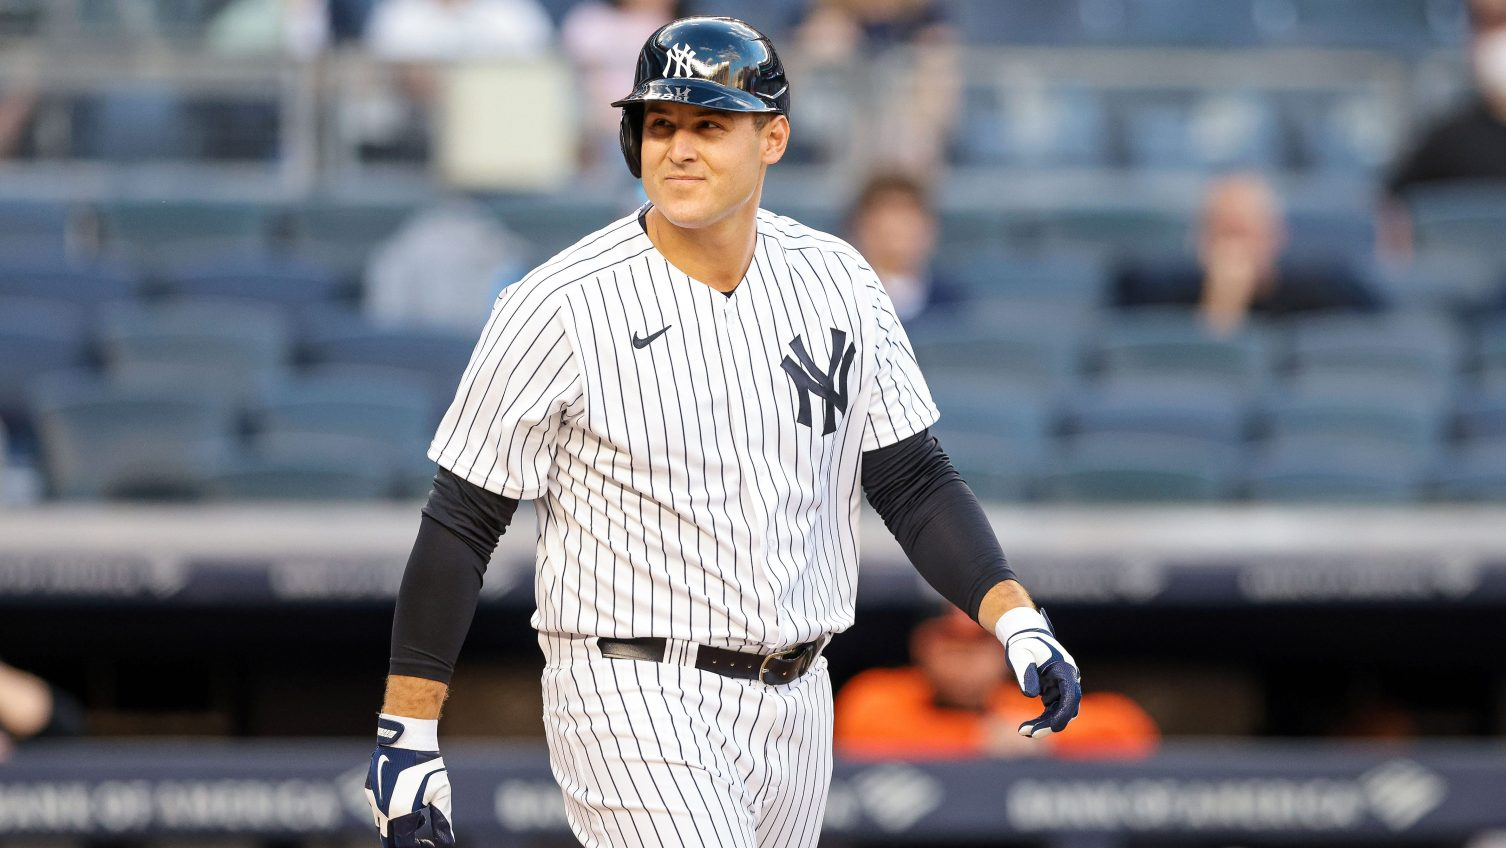 Yankees COVID-19 outbreak continues as Anthony Rizzo tests positive